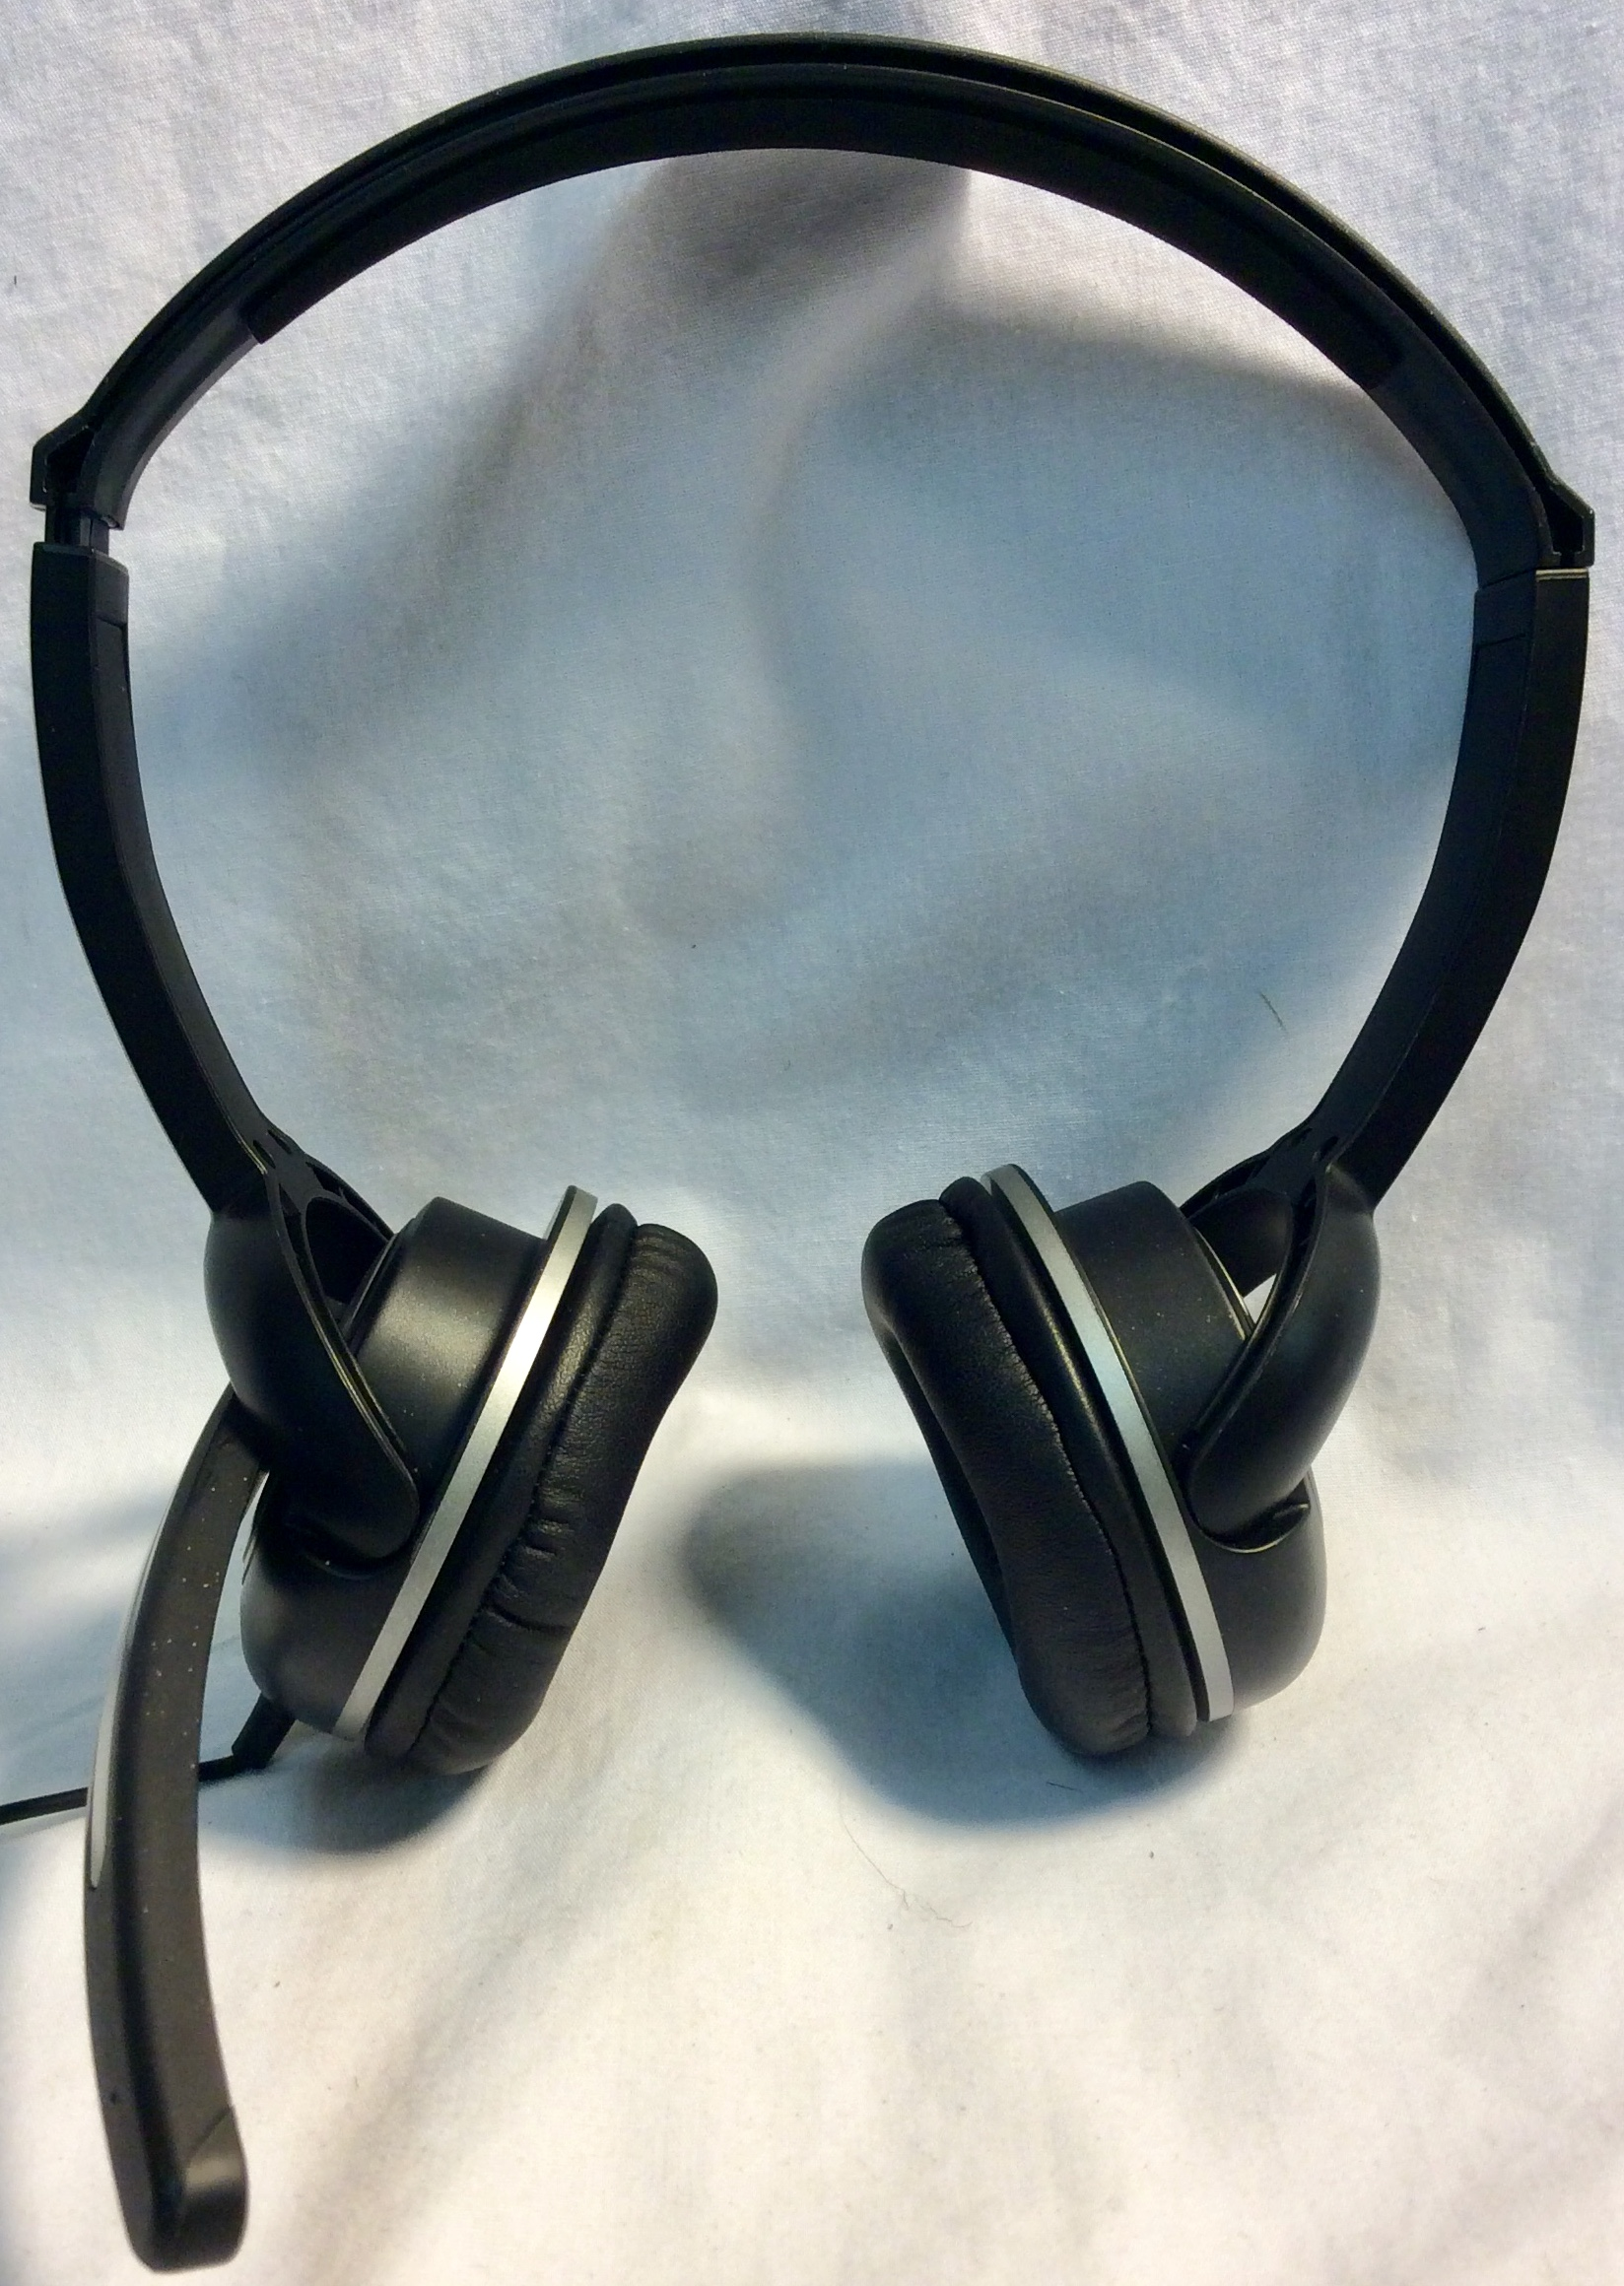 Black headsets with mic with volume control